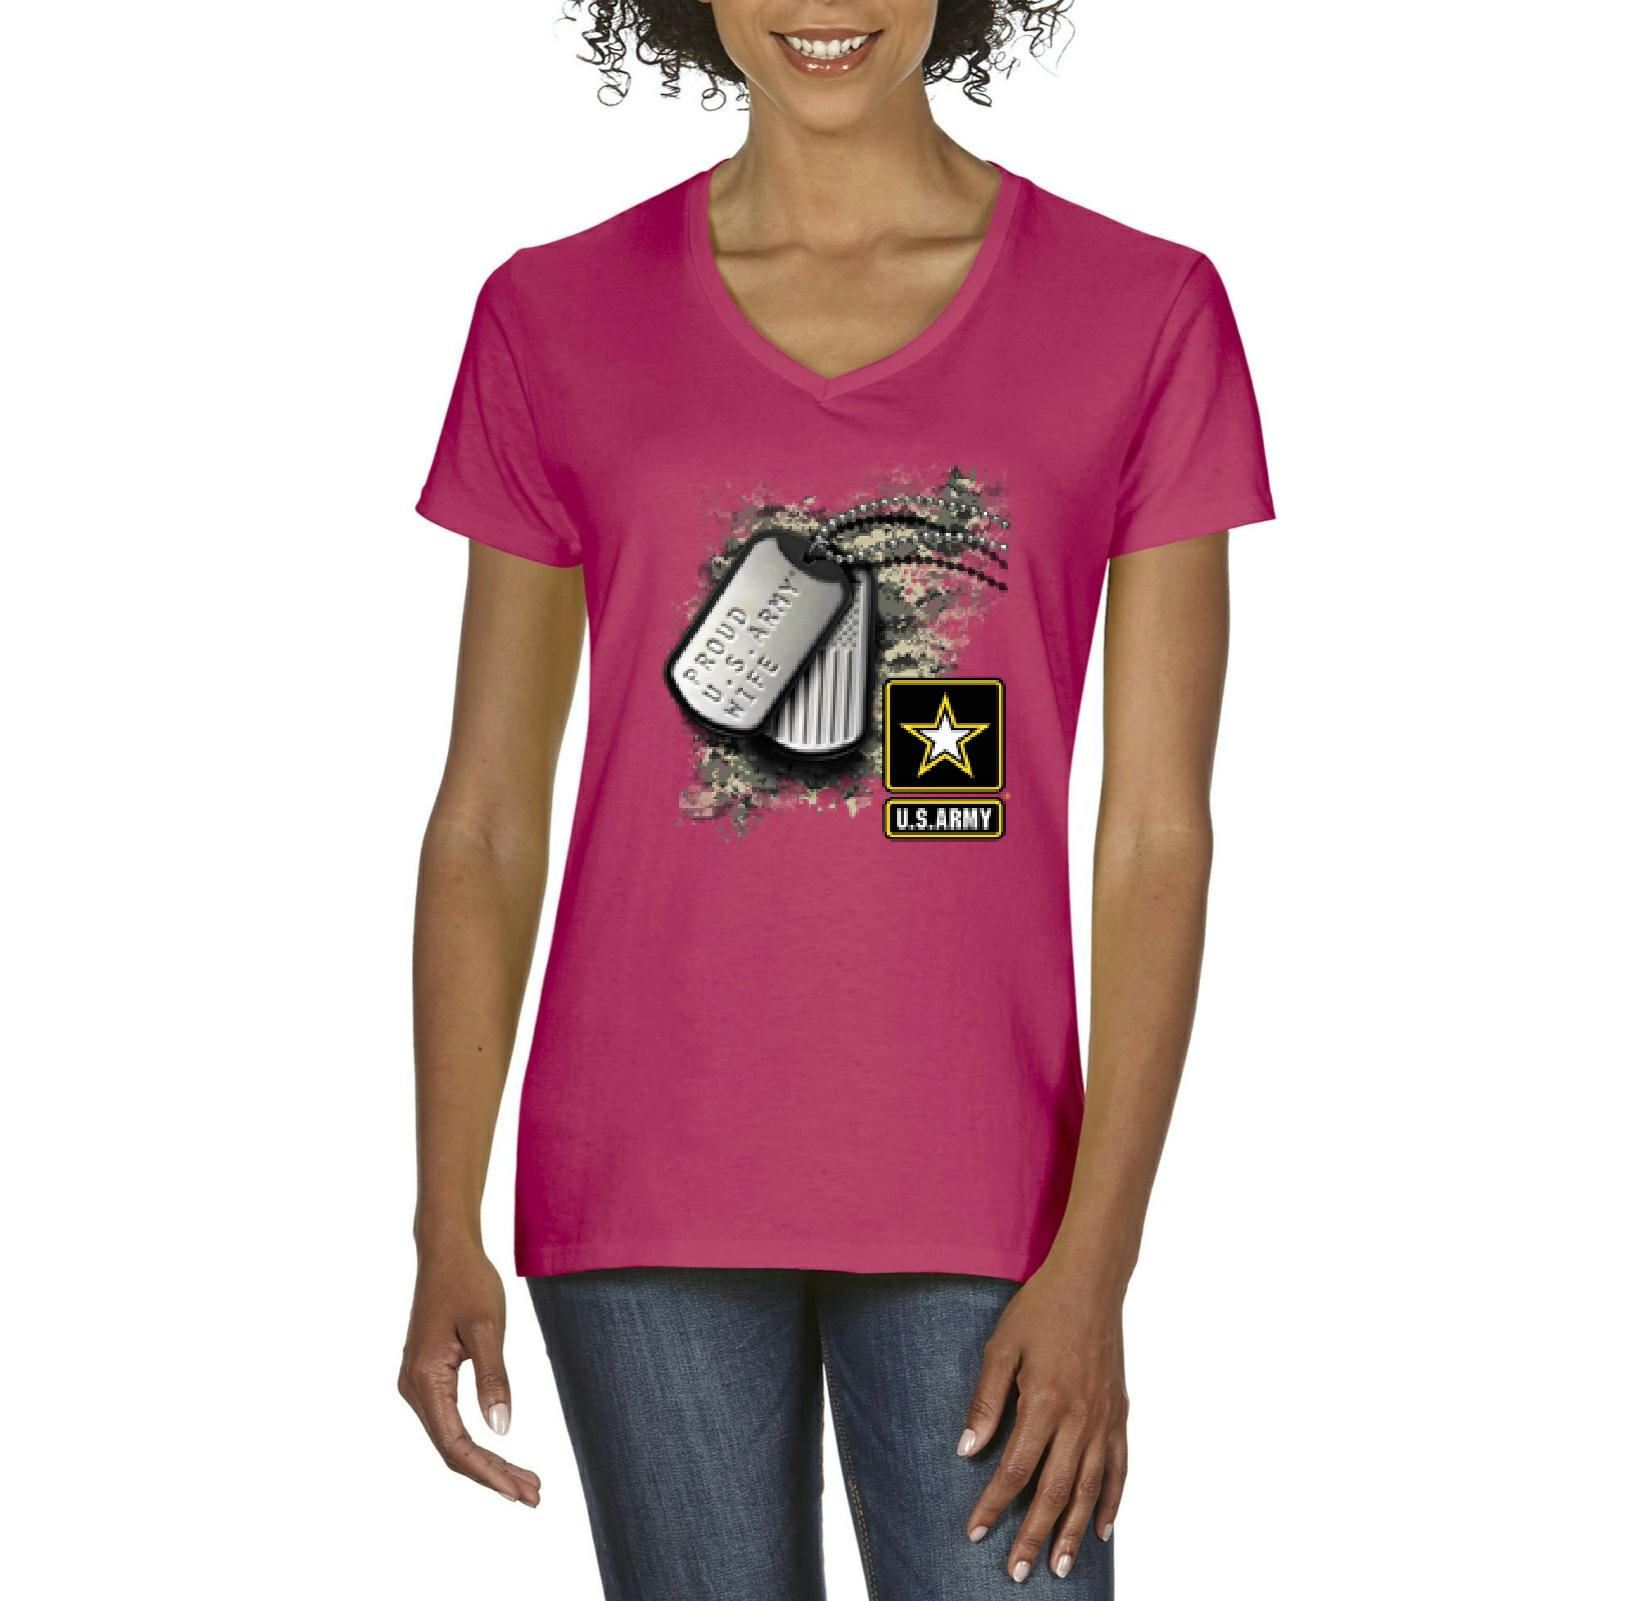 J_H_I Proud U.S. Wife Tag Army Gifts Army Troop Homecoming Surprise Party Womens Shirts V-neck